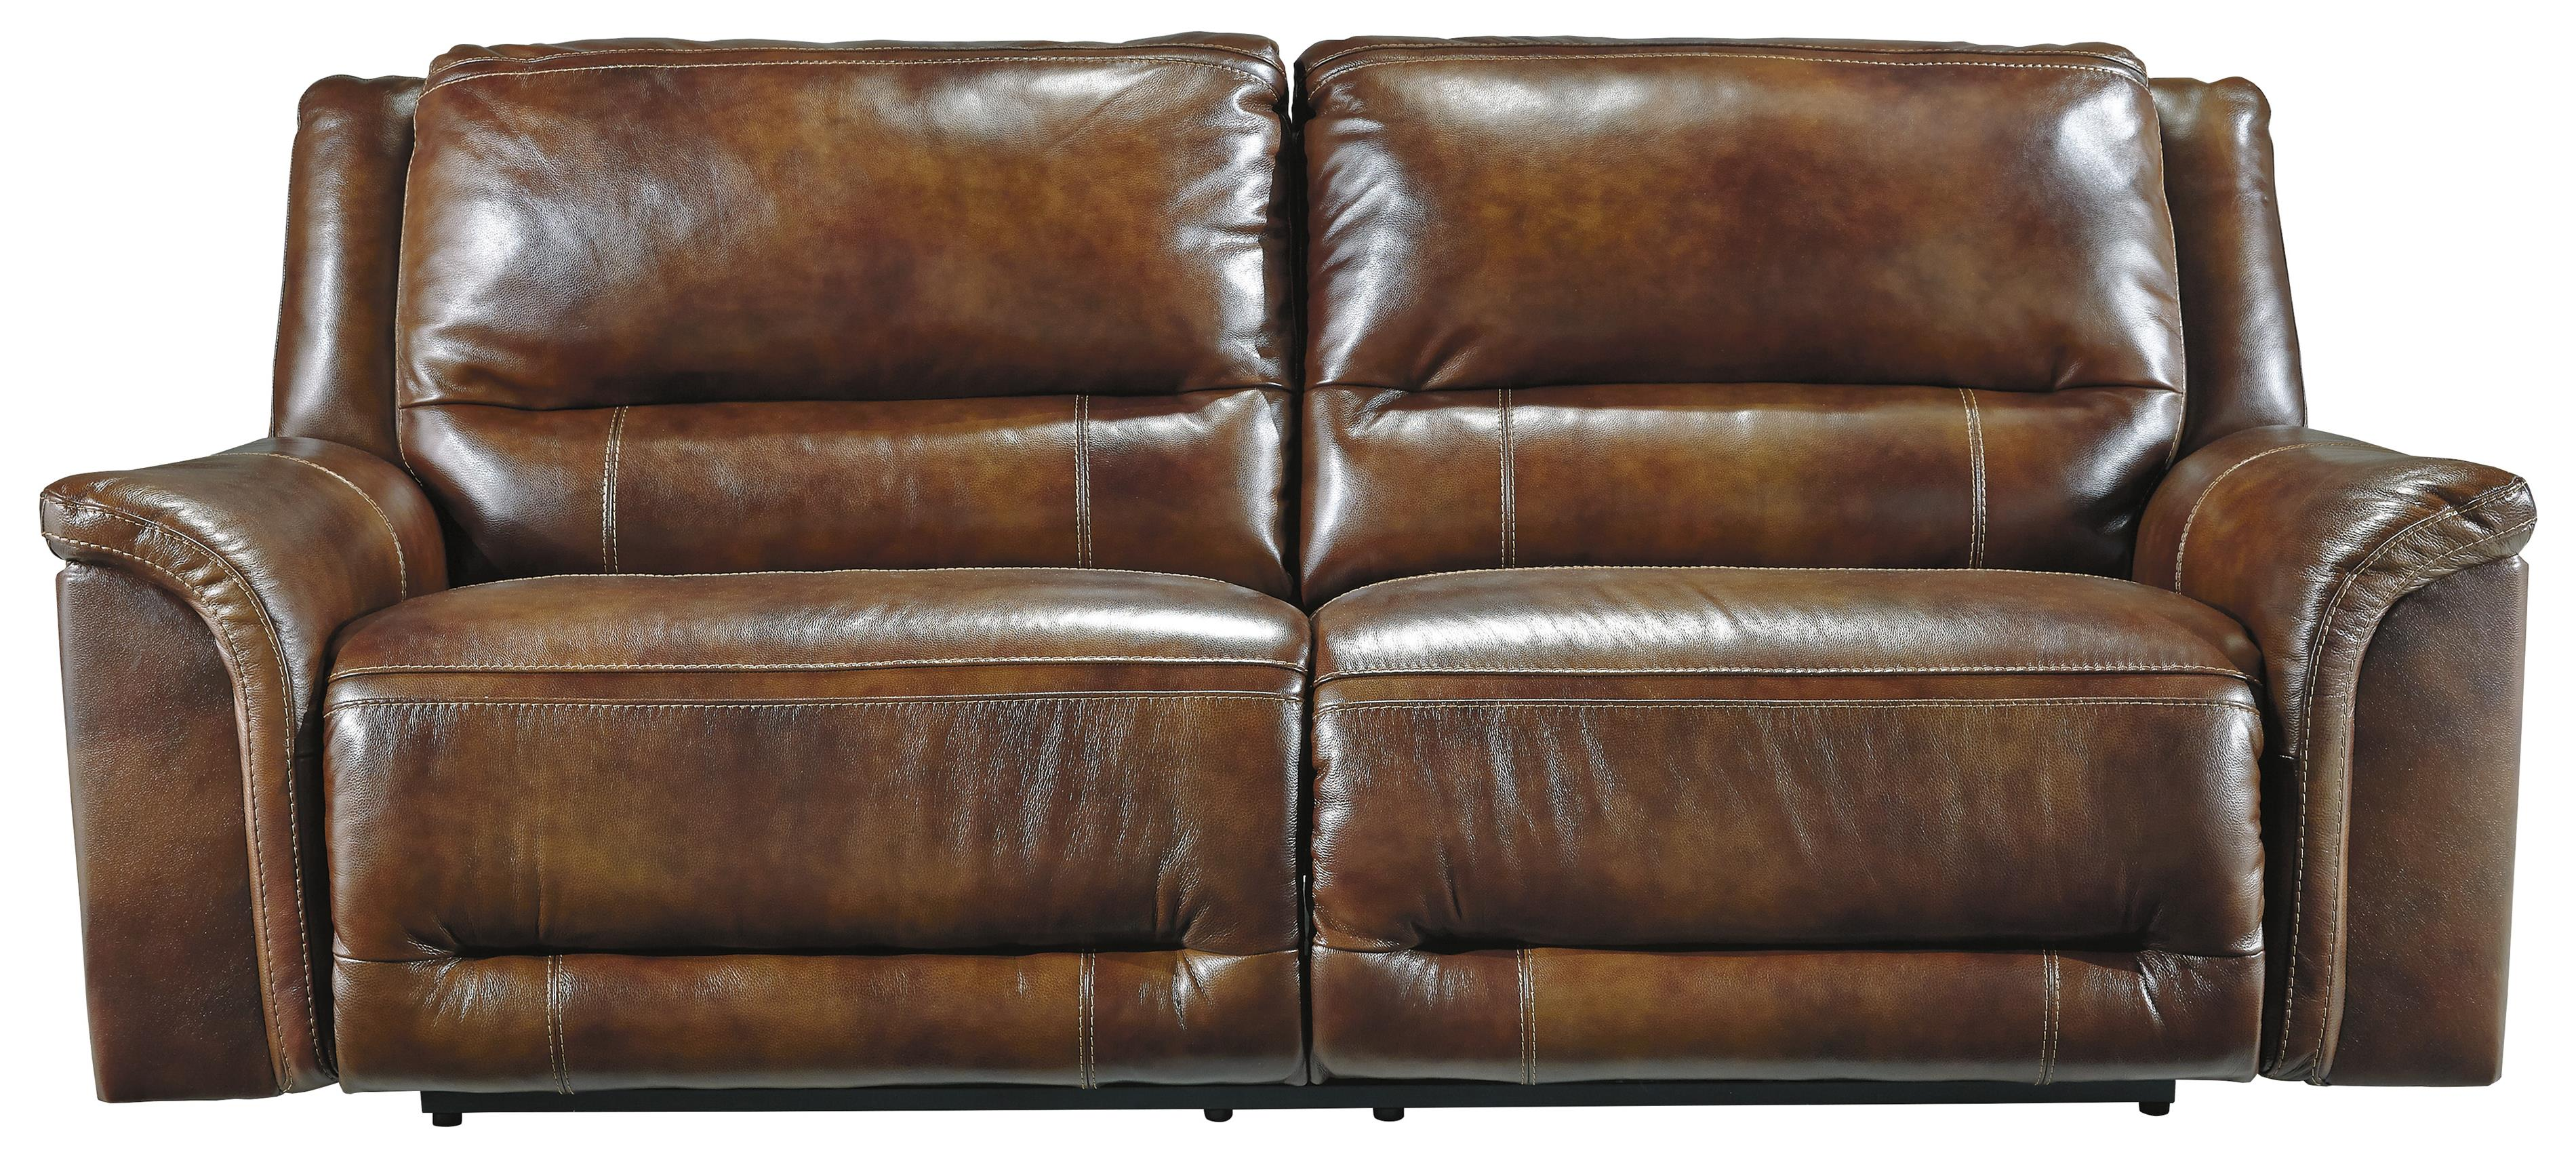 Signature Design by Ashley Jayron 2 Seat Reclining Sofa - Item Number: U7660081